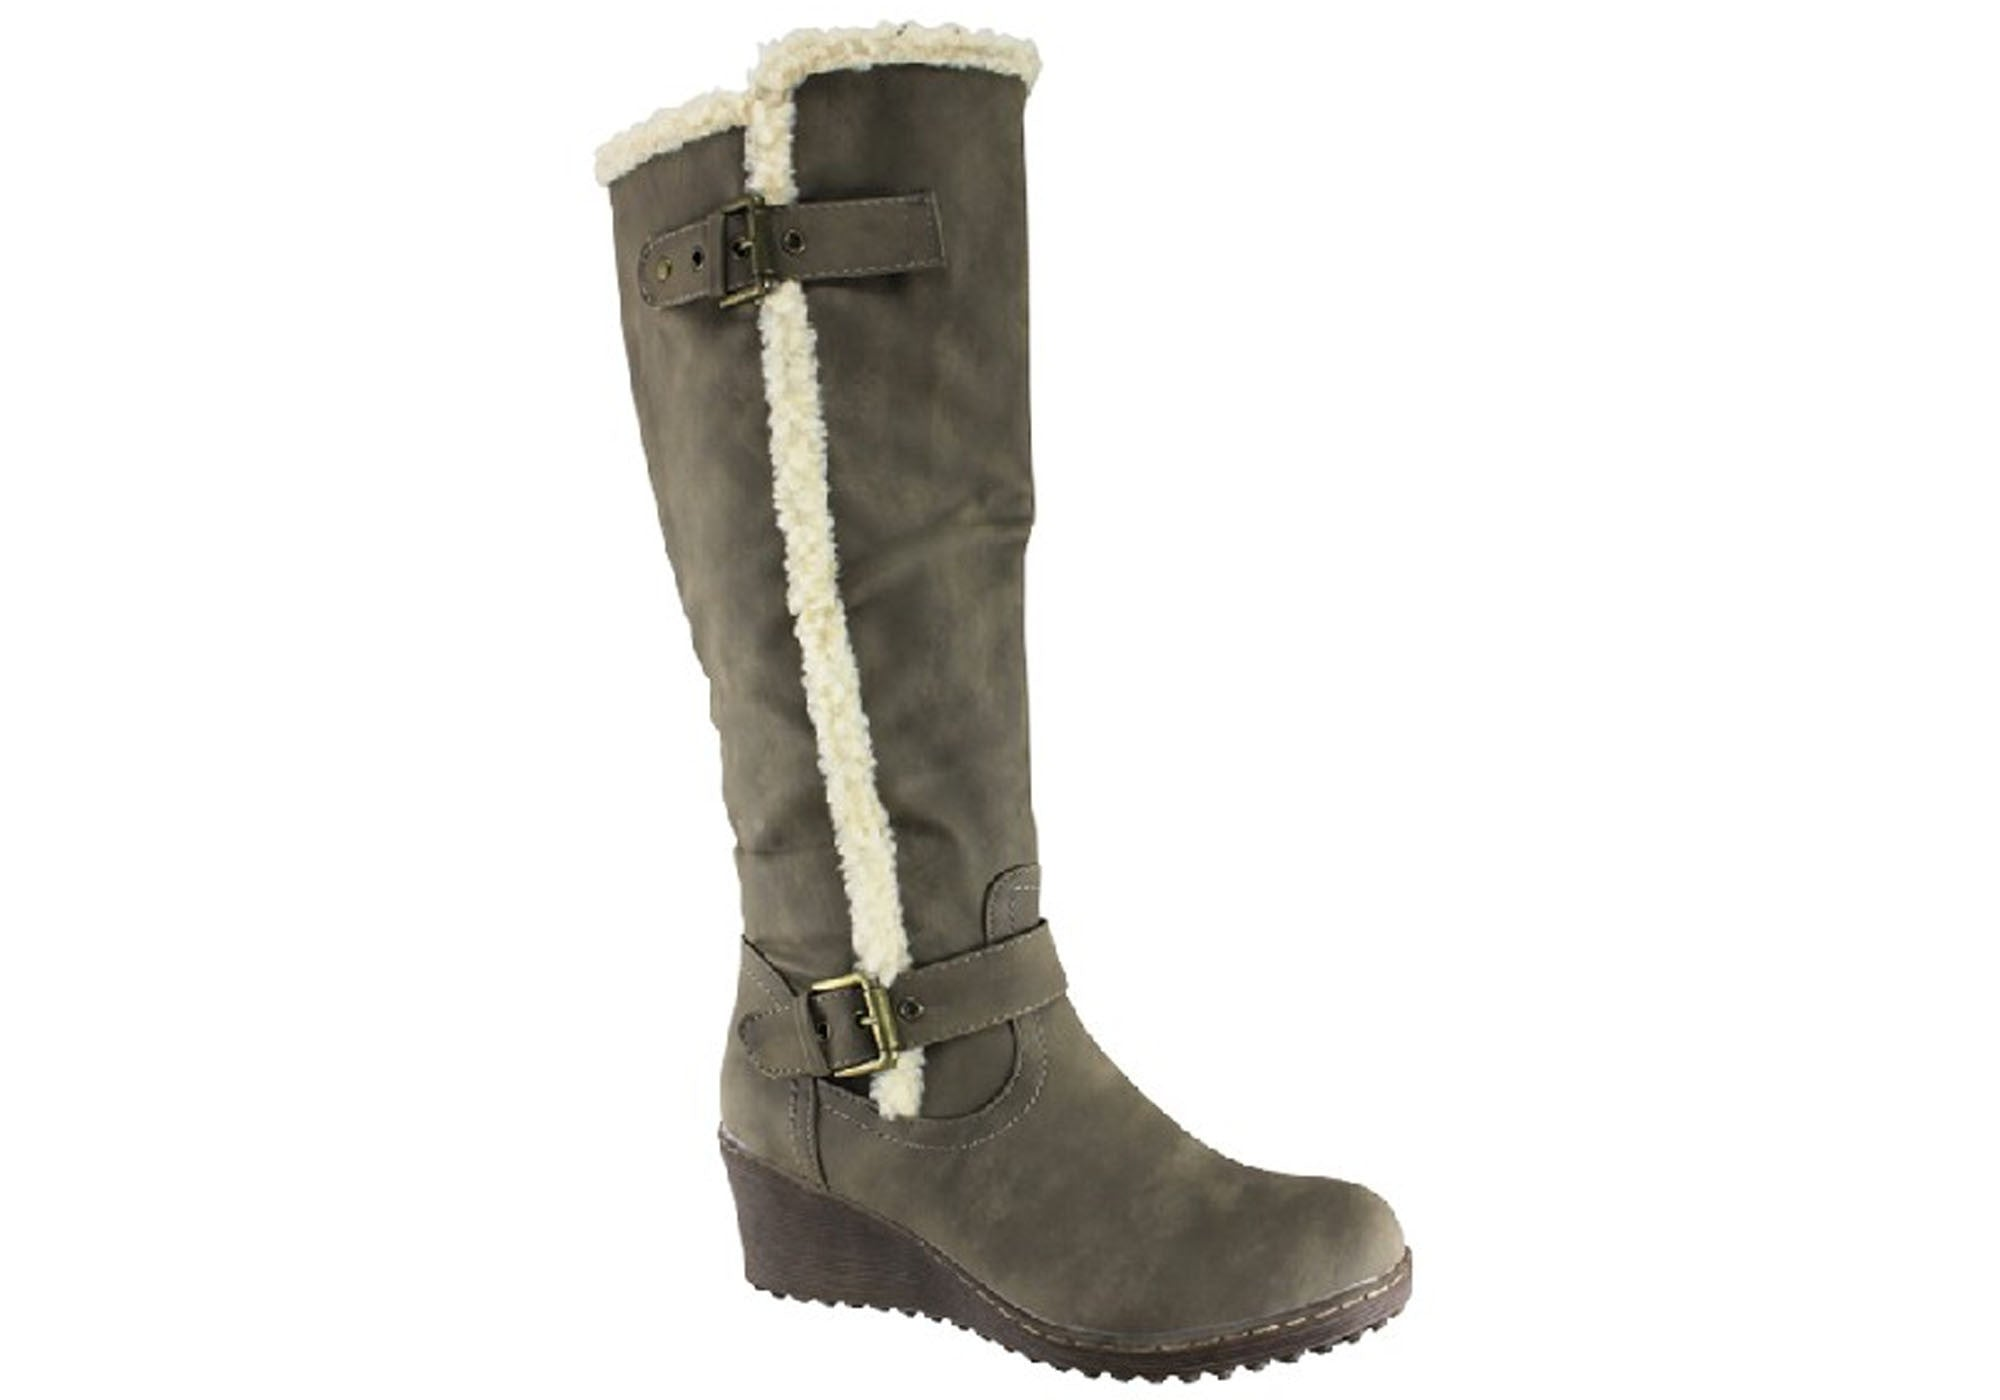 New Bellissimo Boots New Maria Womens Wedge Knee High Boots Bellissimo 71e639